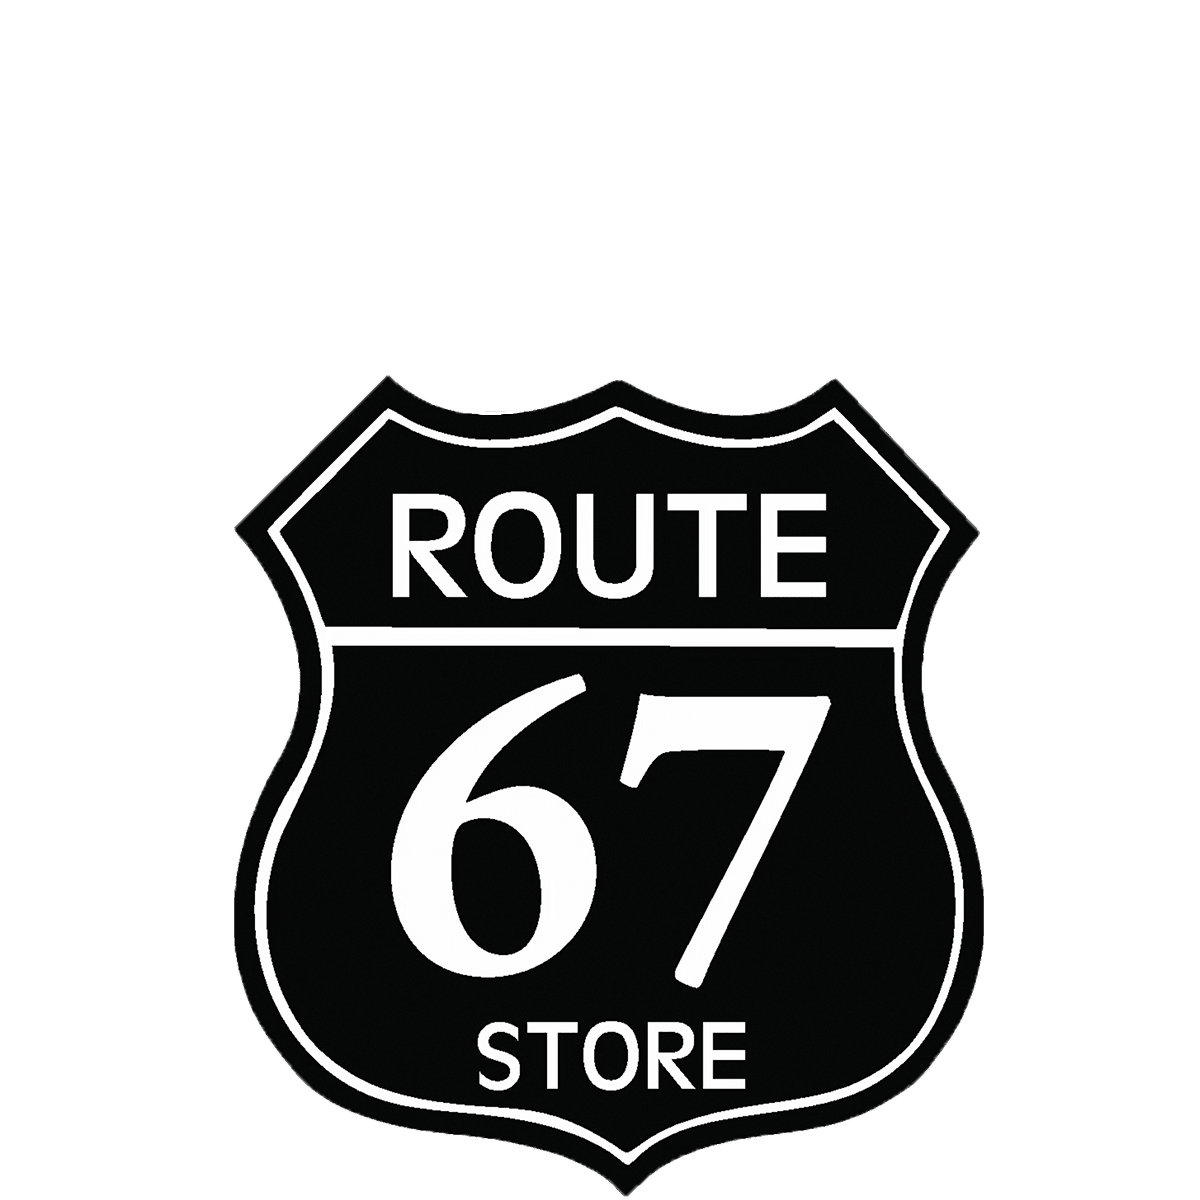 ROUTE 67 STORE